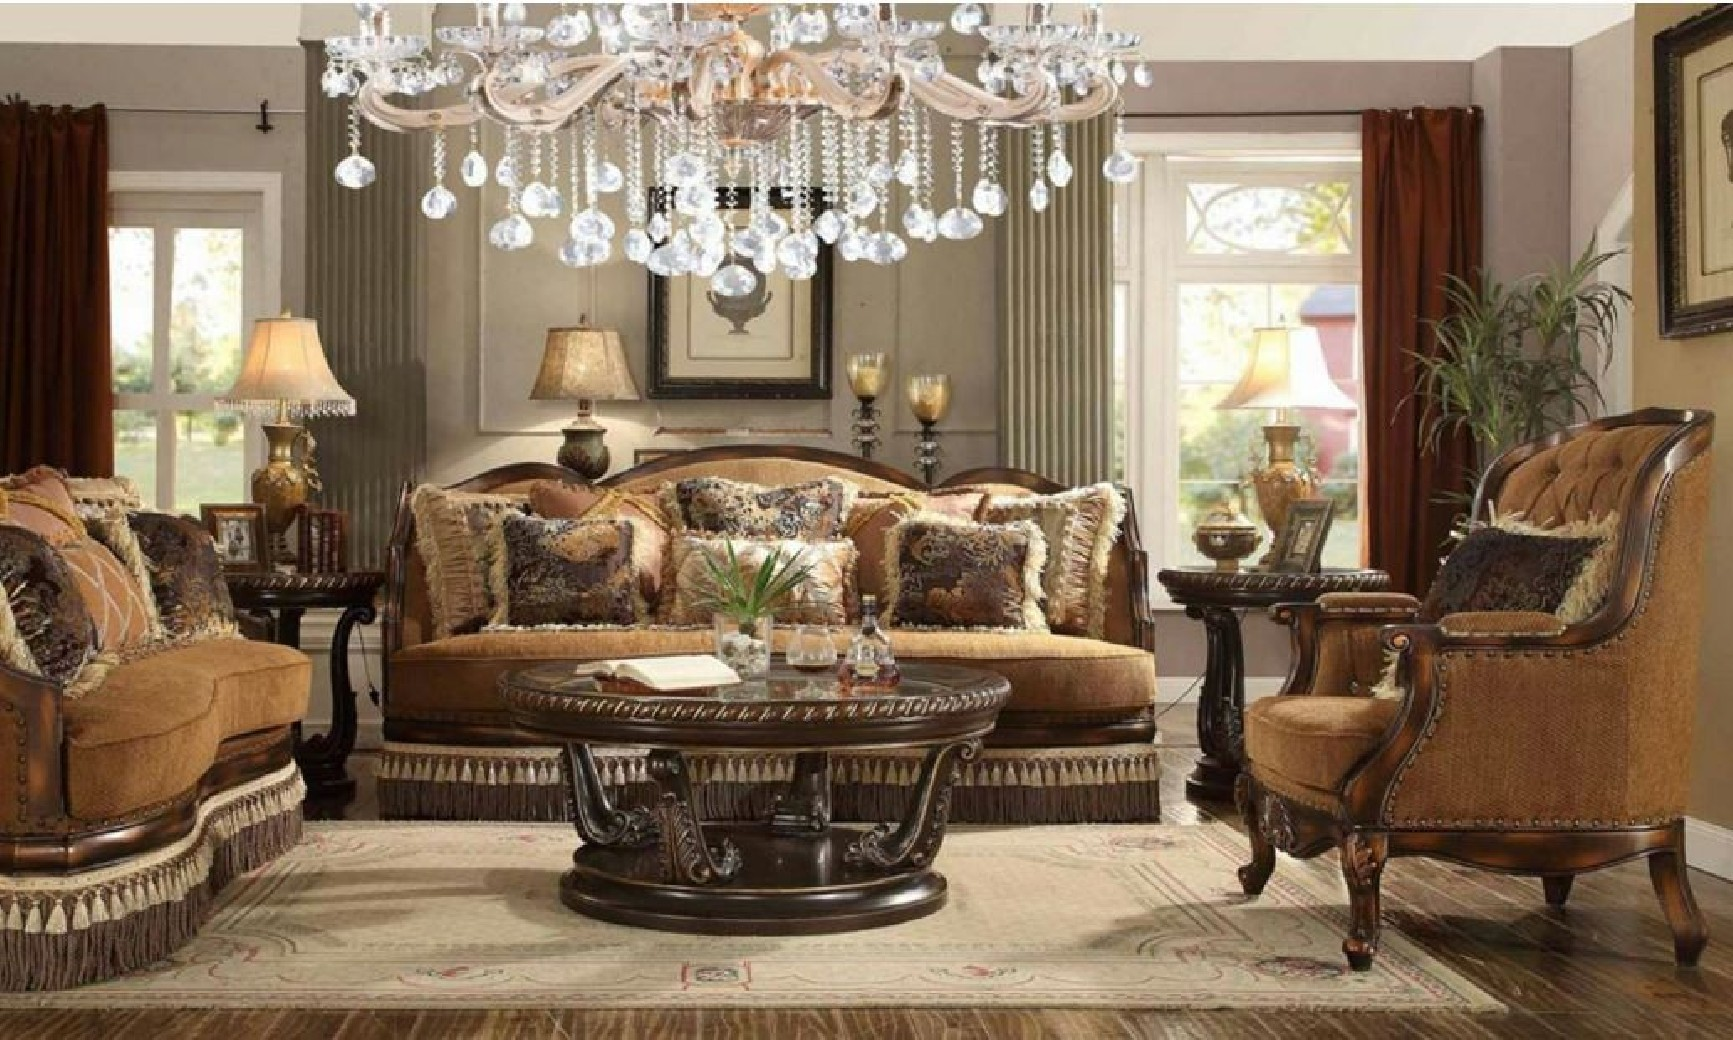 HD 9344 Homey Design Upholstery Living Room Set Victorian, European U0026  Classic Design Sofa Set Part 50